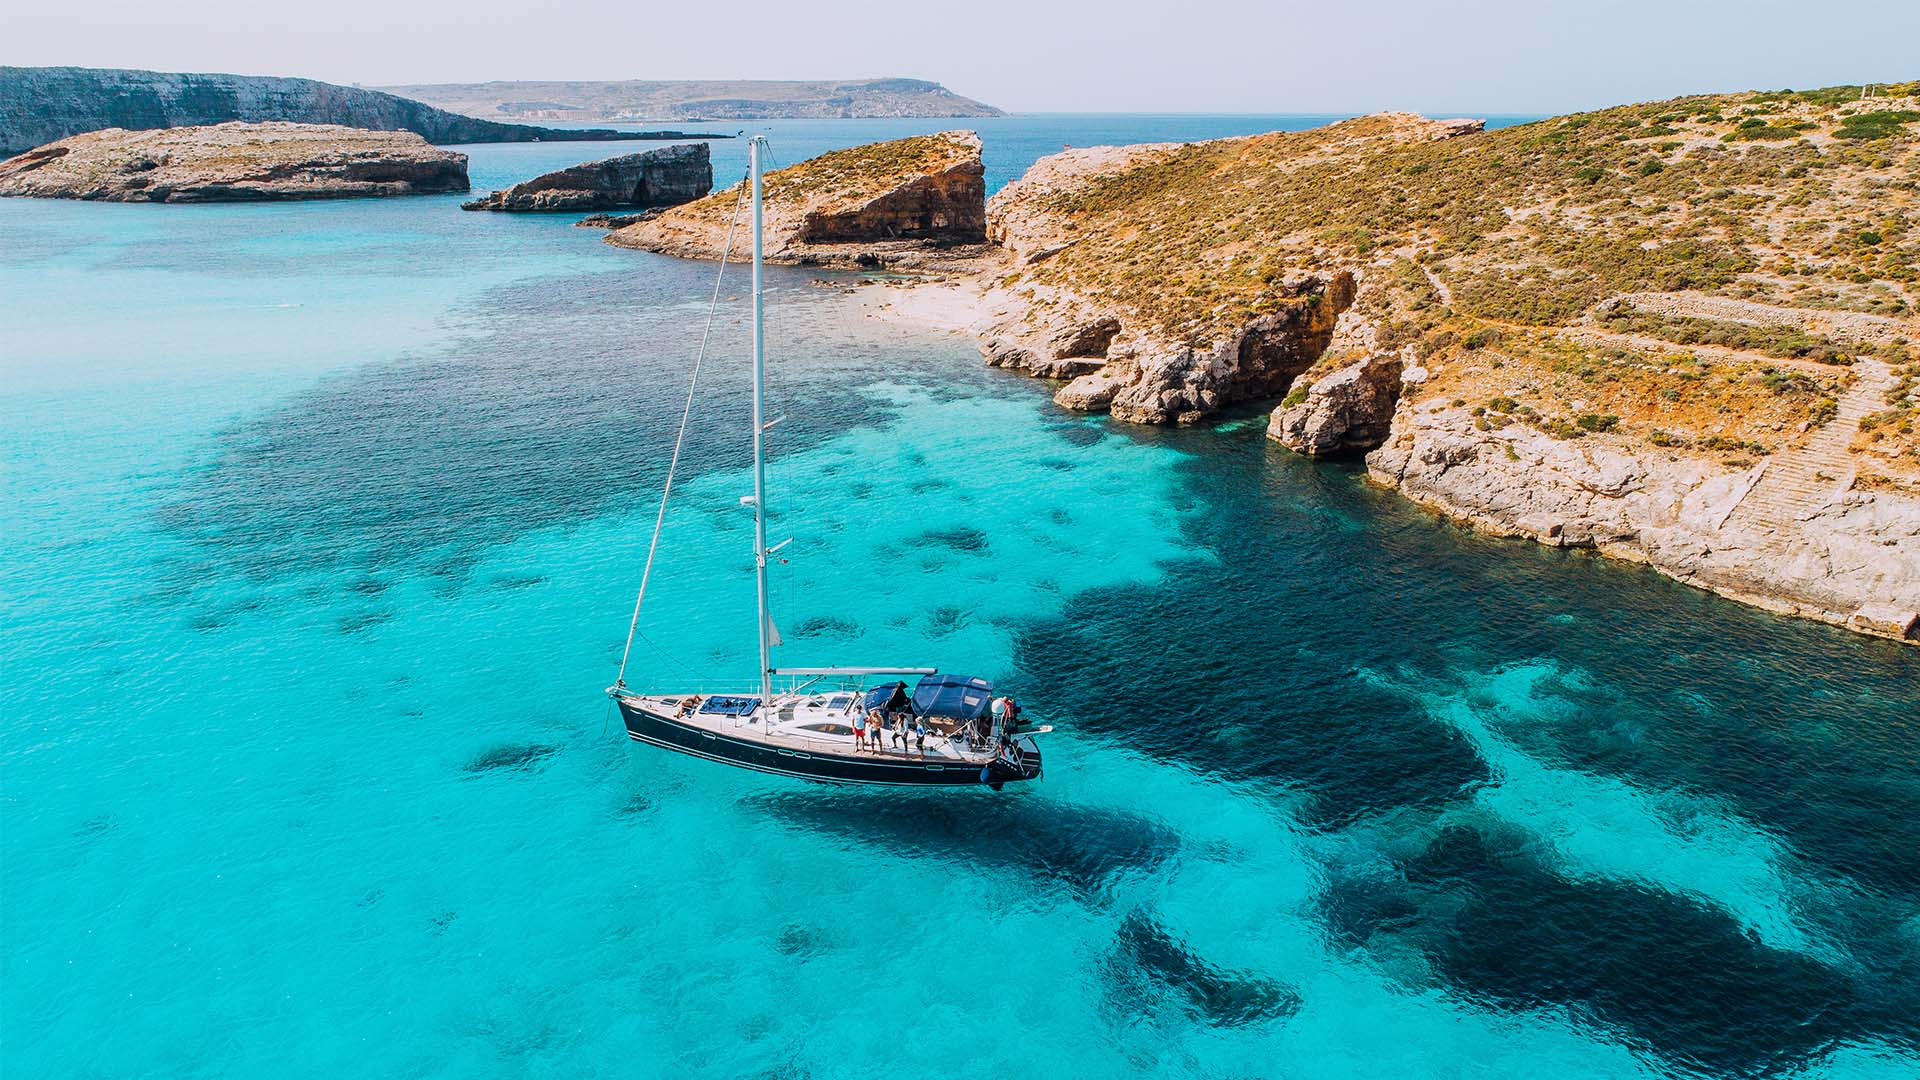 Yachting in Blue Lagoon, off the island of Comino